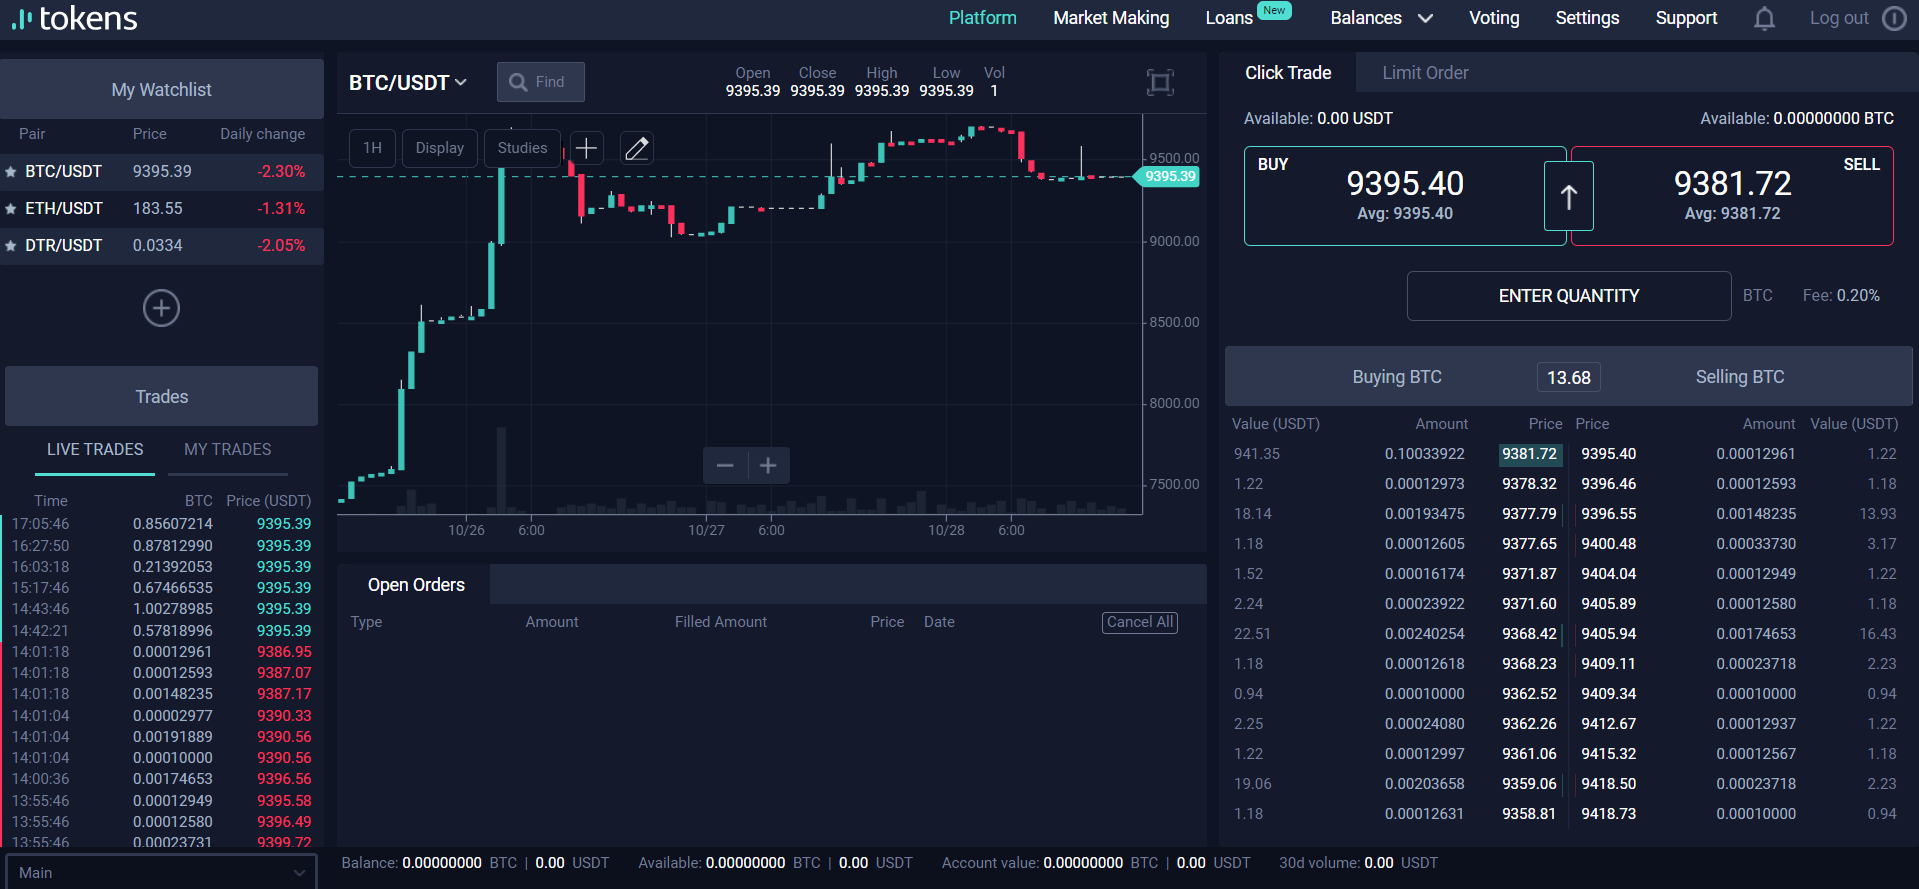 TokensNet Trading View